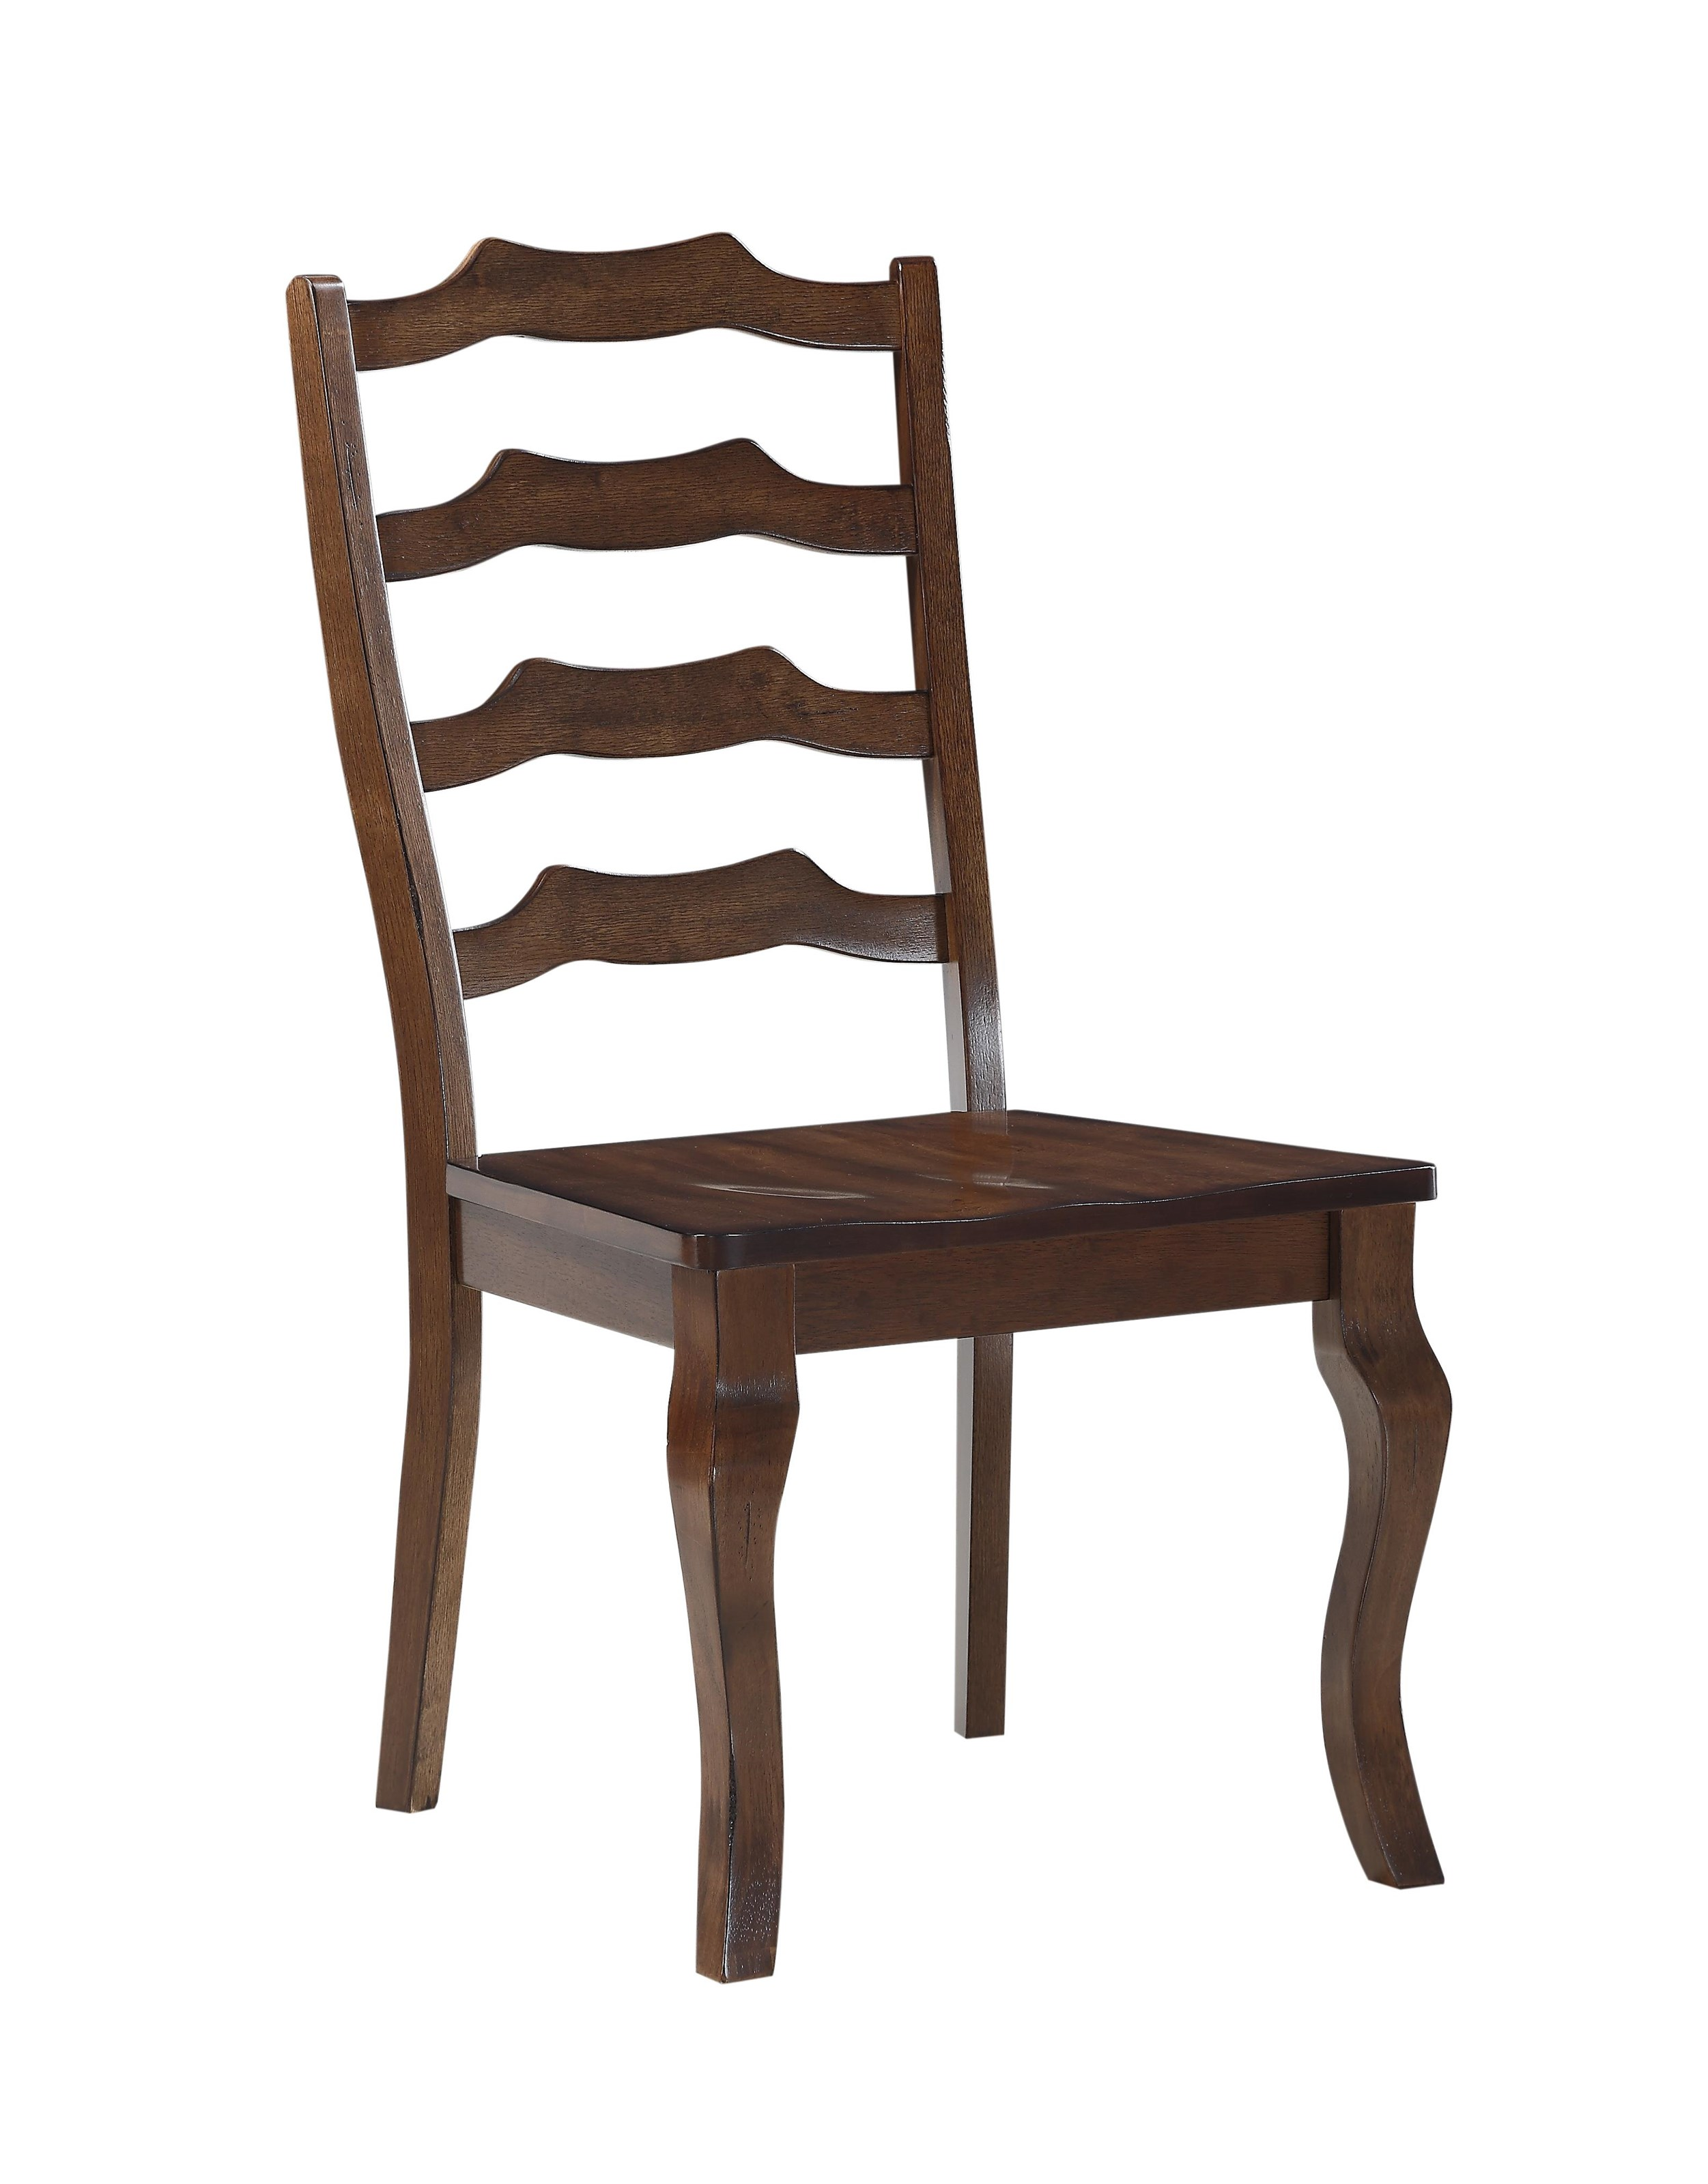 Morris Home Furnishings Creston Creston Ladder Back Dining Chair - Item Number: 959118339